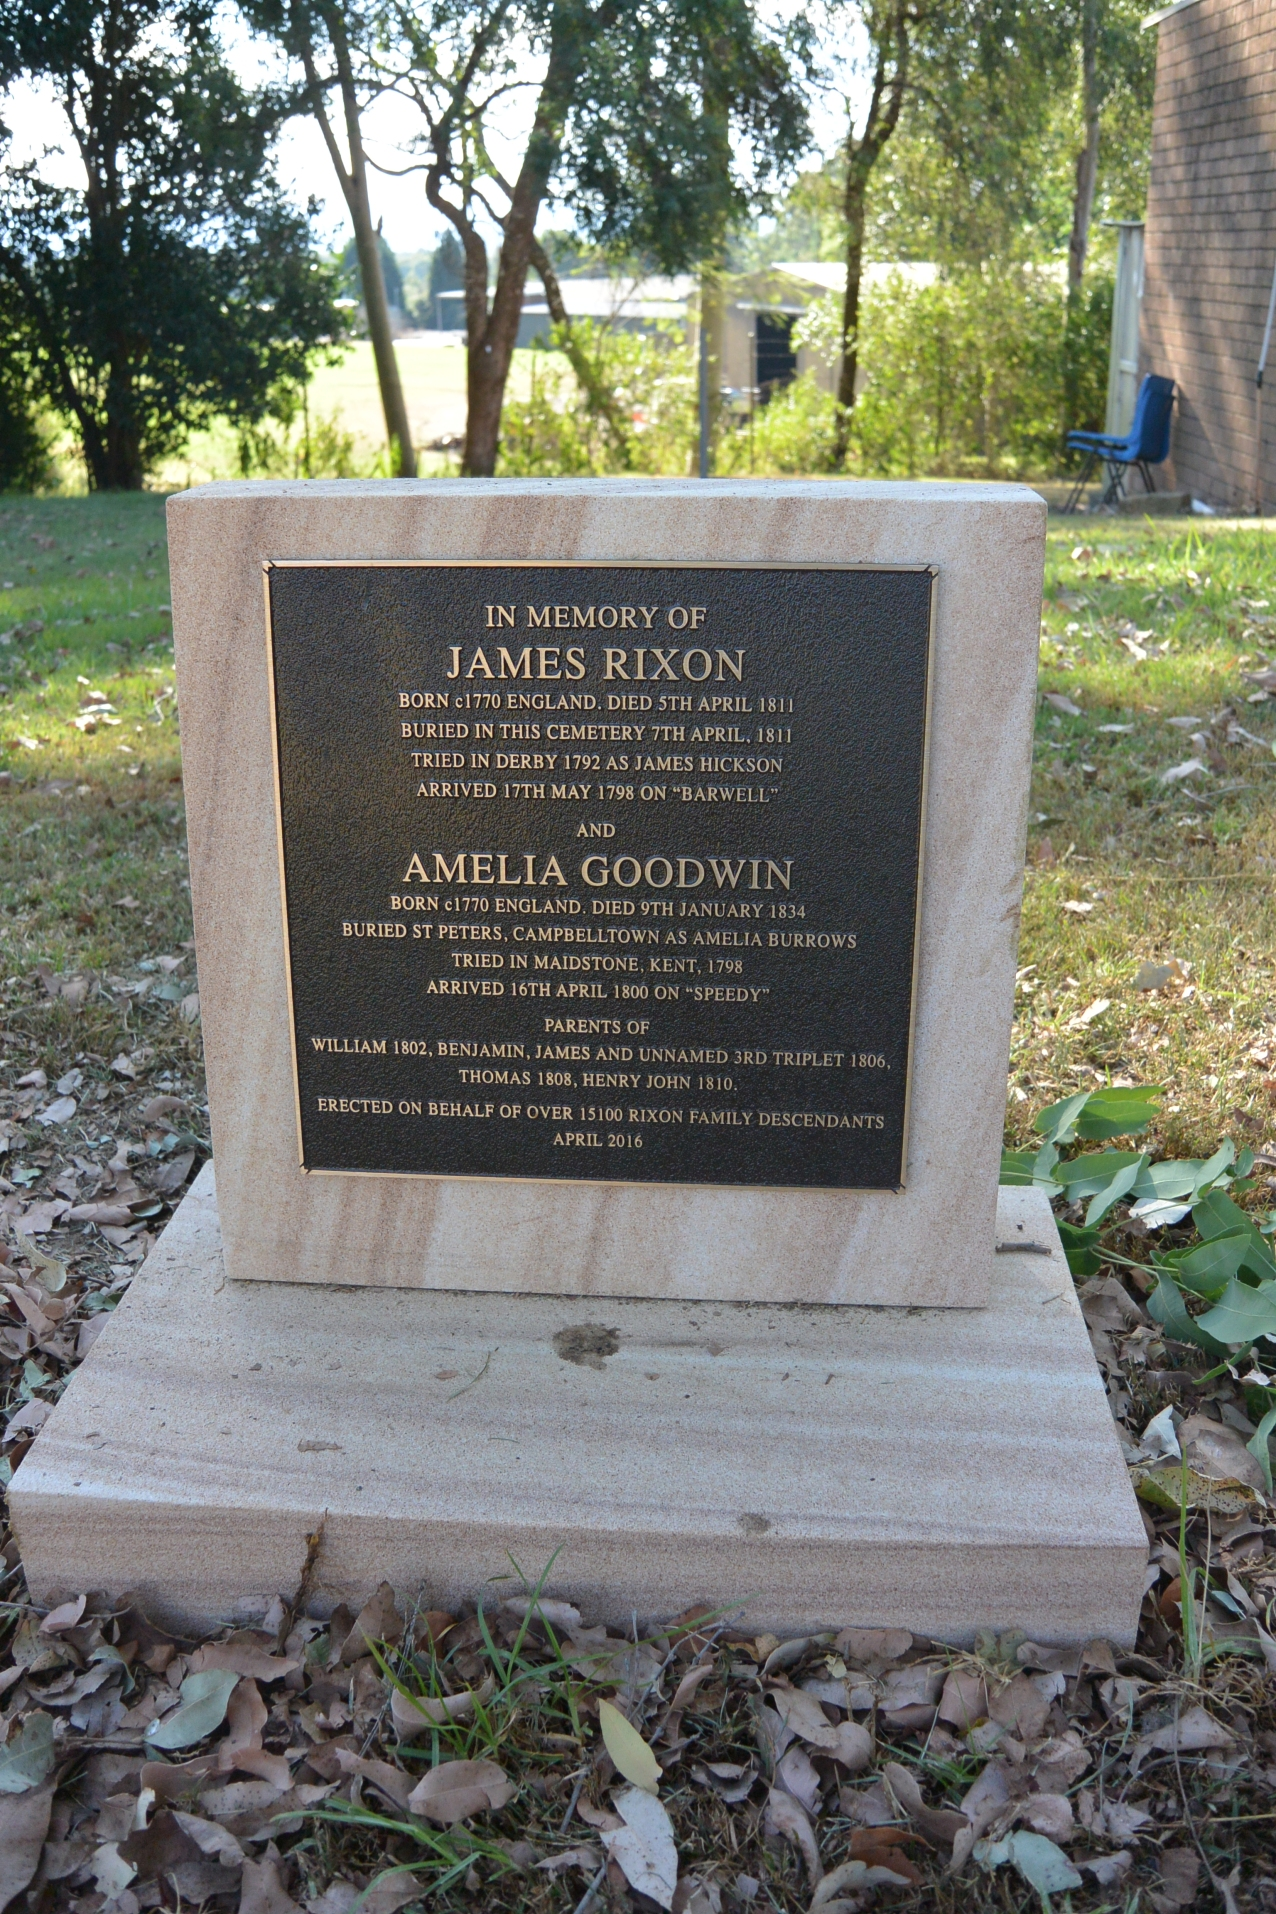 James Rixon and Amelia Goodwin